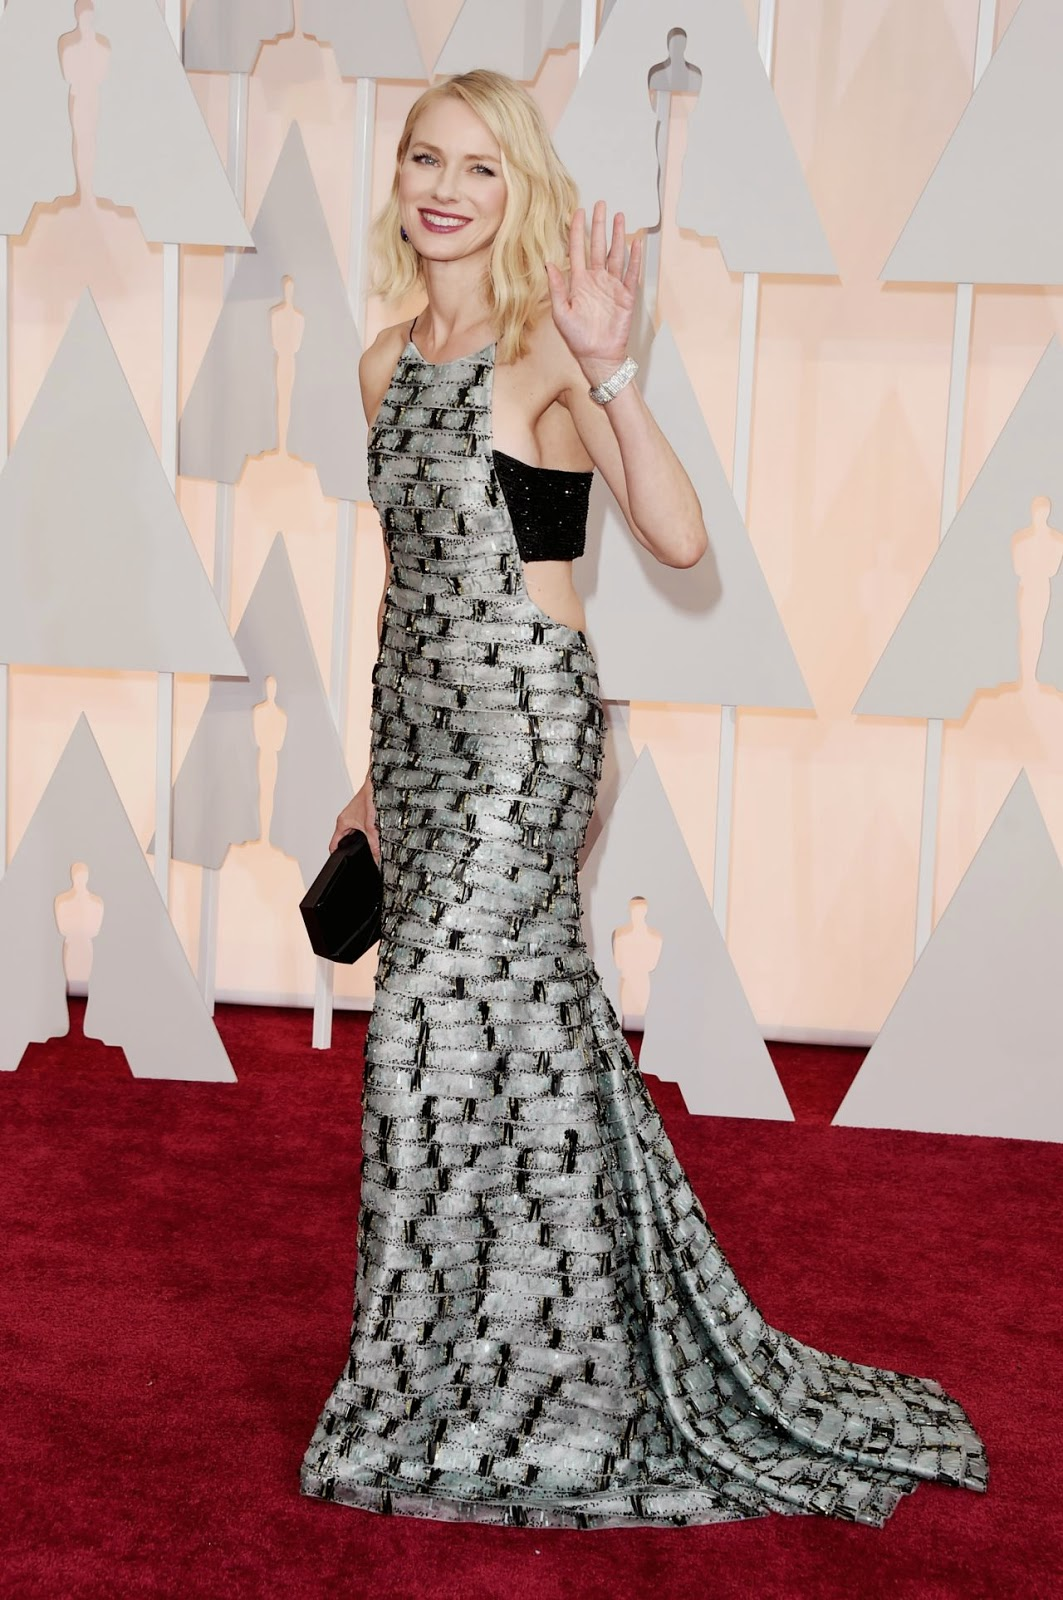 Naomi Watts flaunts an Armani Prive dress at the 2015 Oscars in Hollywood